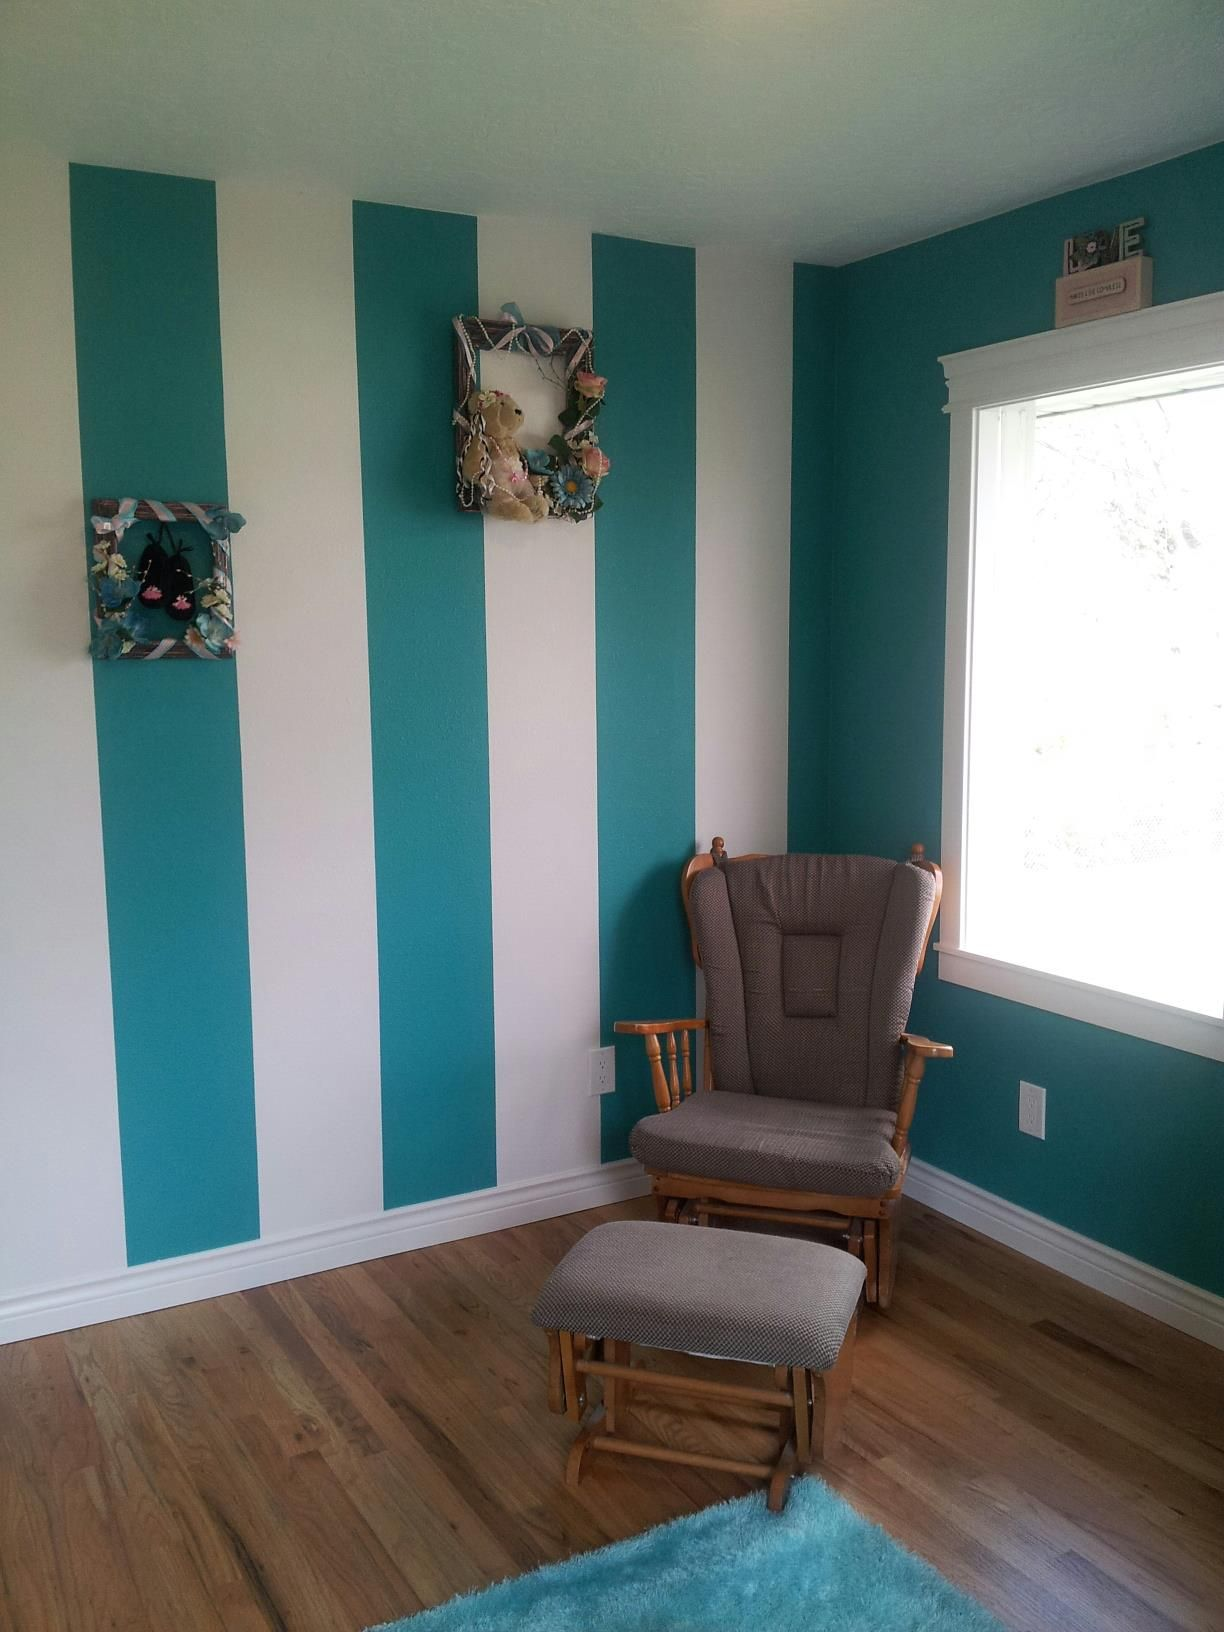 Turquoise Bedroom Ideas: Striped Wall - Turquoise And White